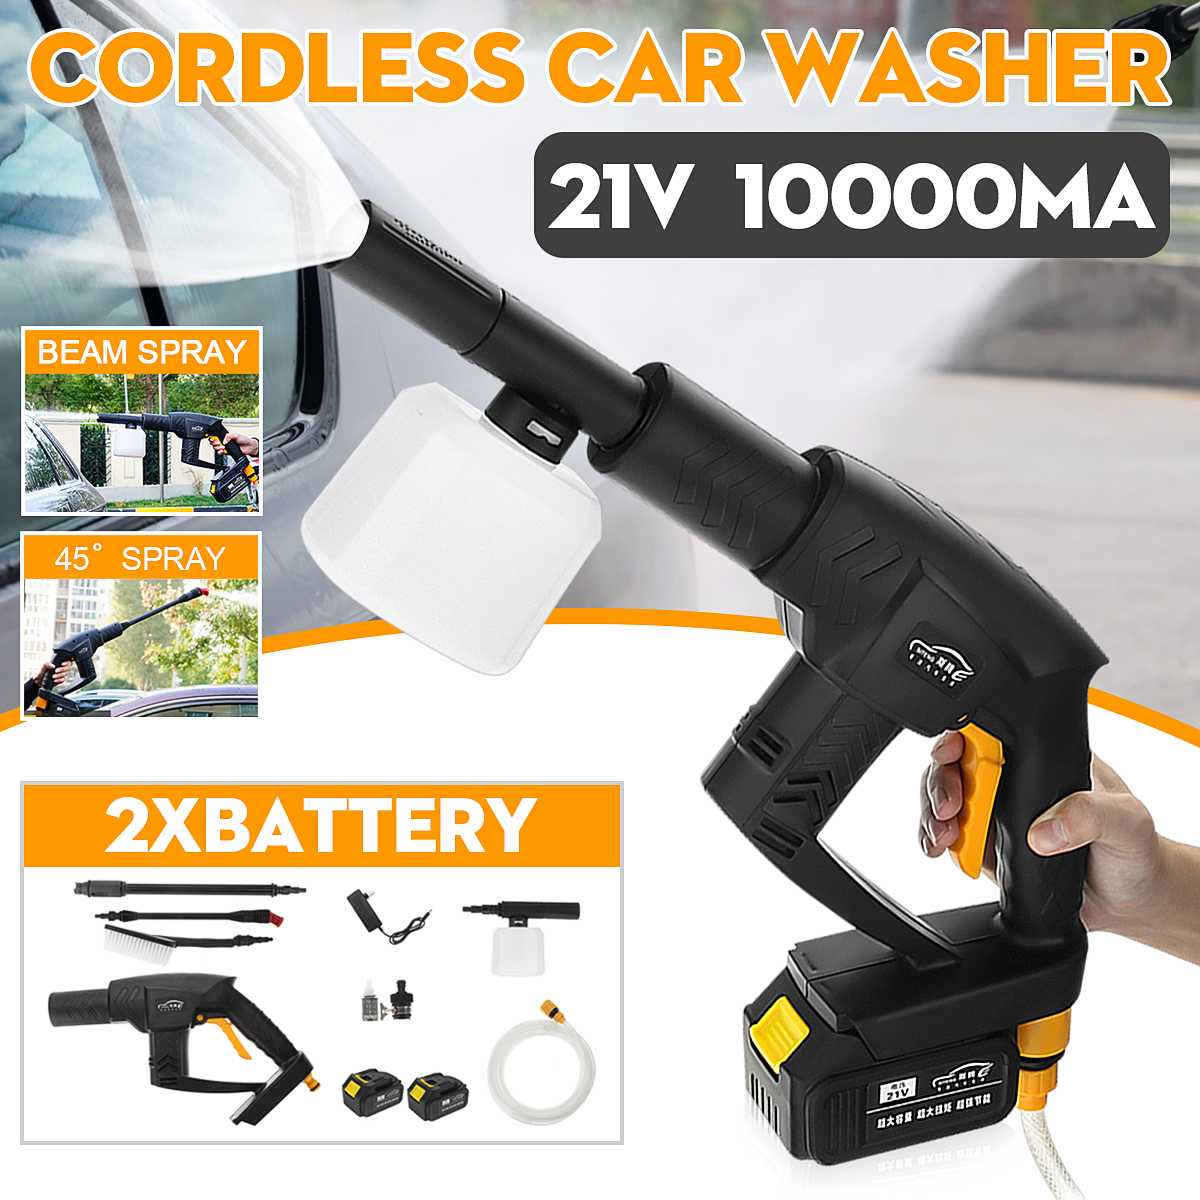 12pcs/set 21V Car Washer Cordless Rechargeable Car Washer 0.9Mpa High Pressure Hose Cleaner+ 2x10000mA Battery Washing Machine